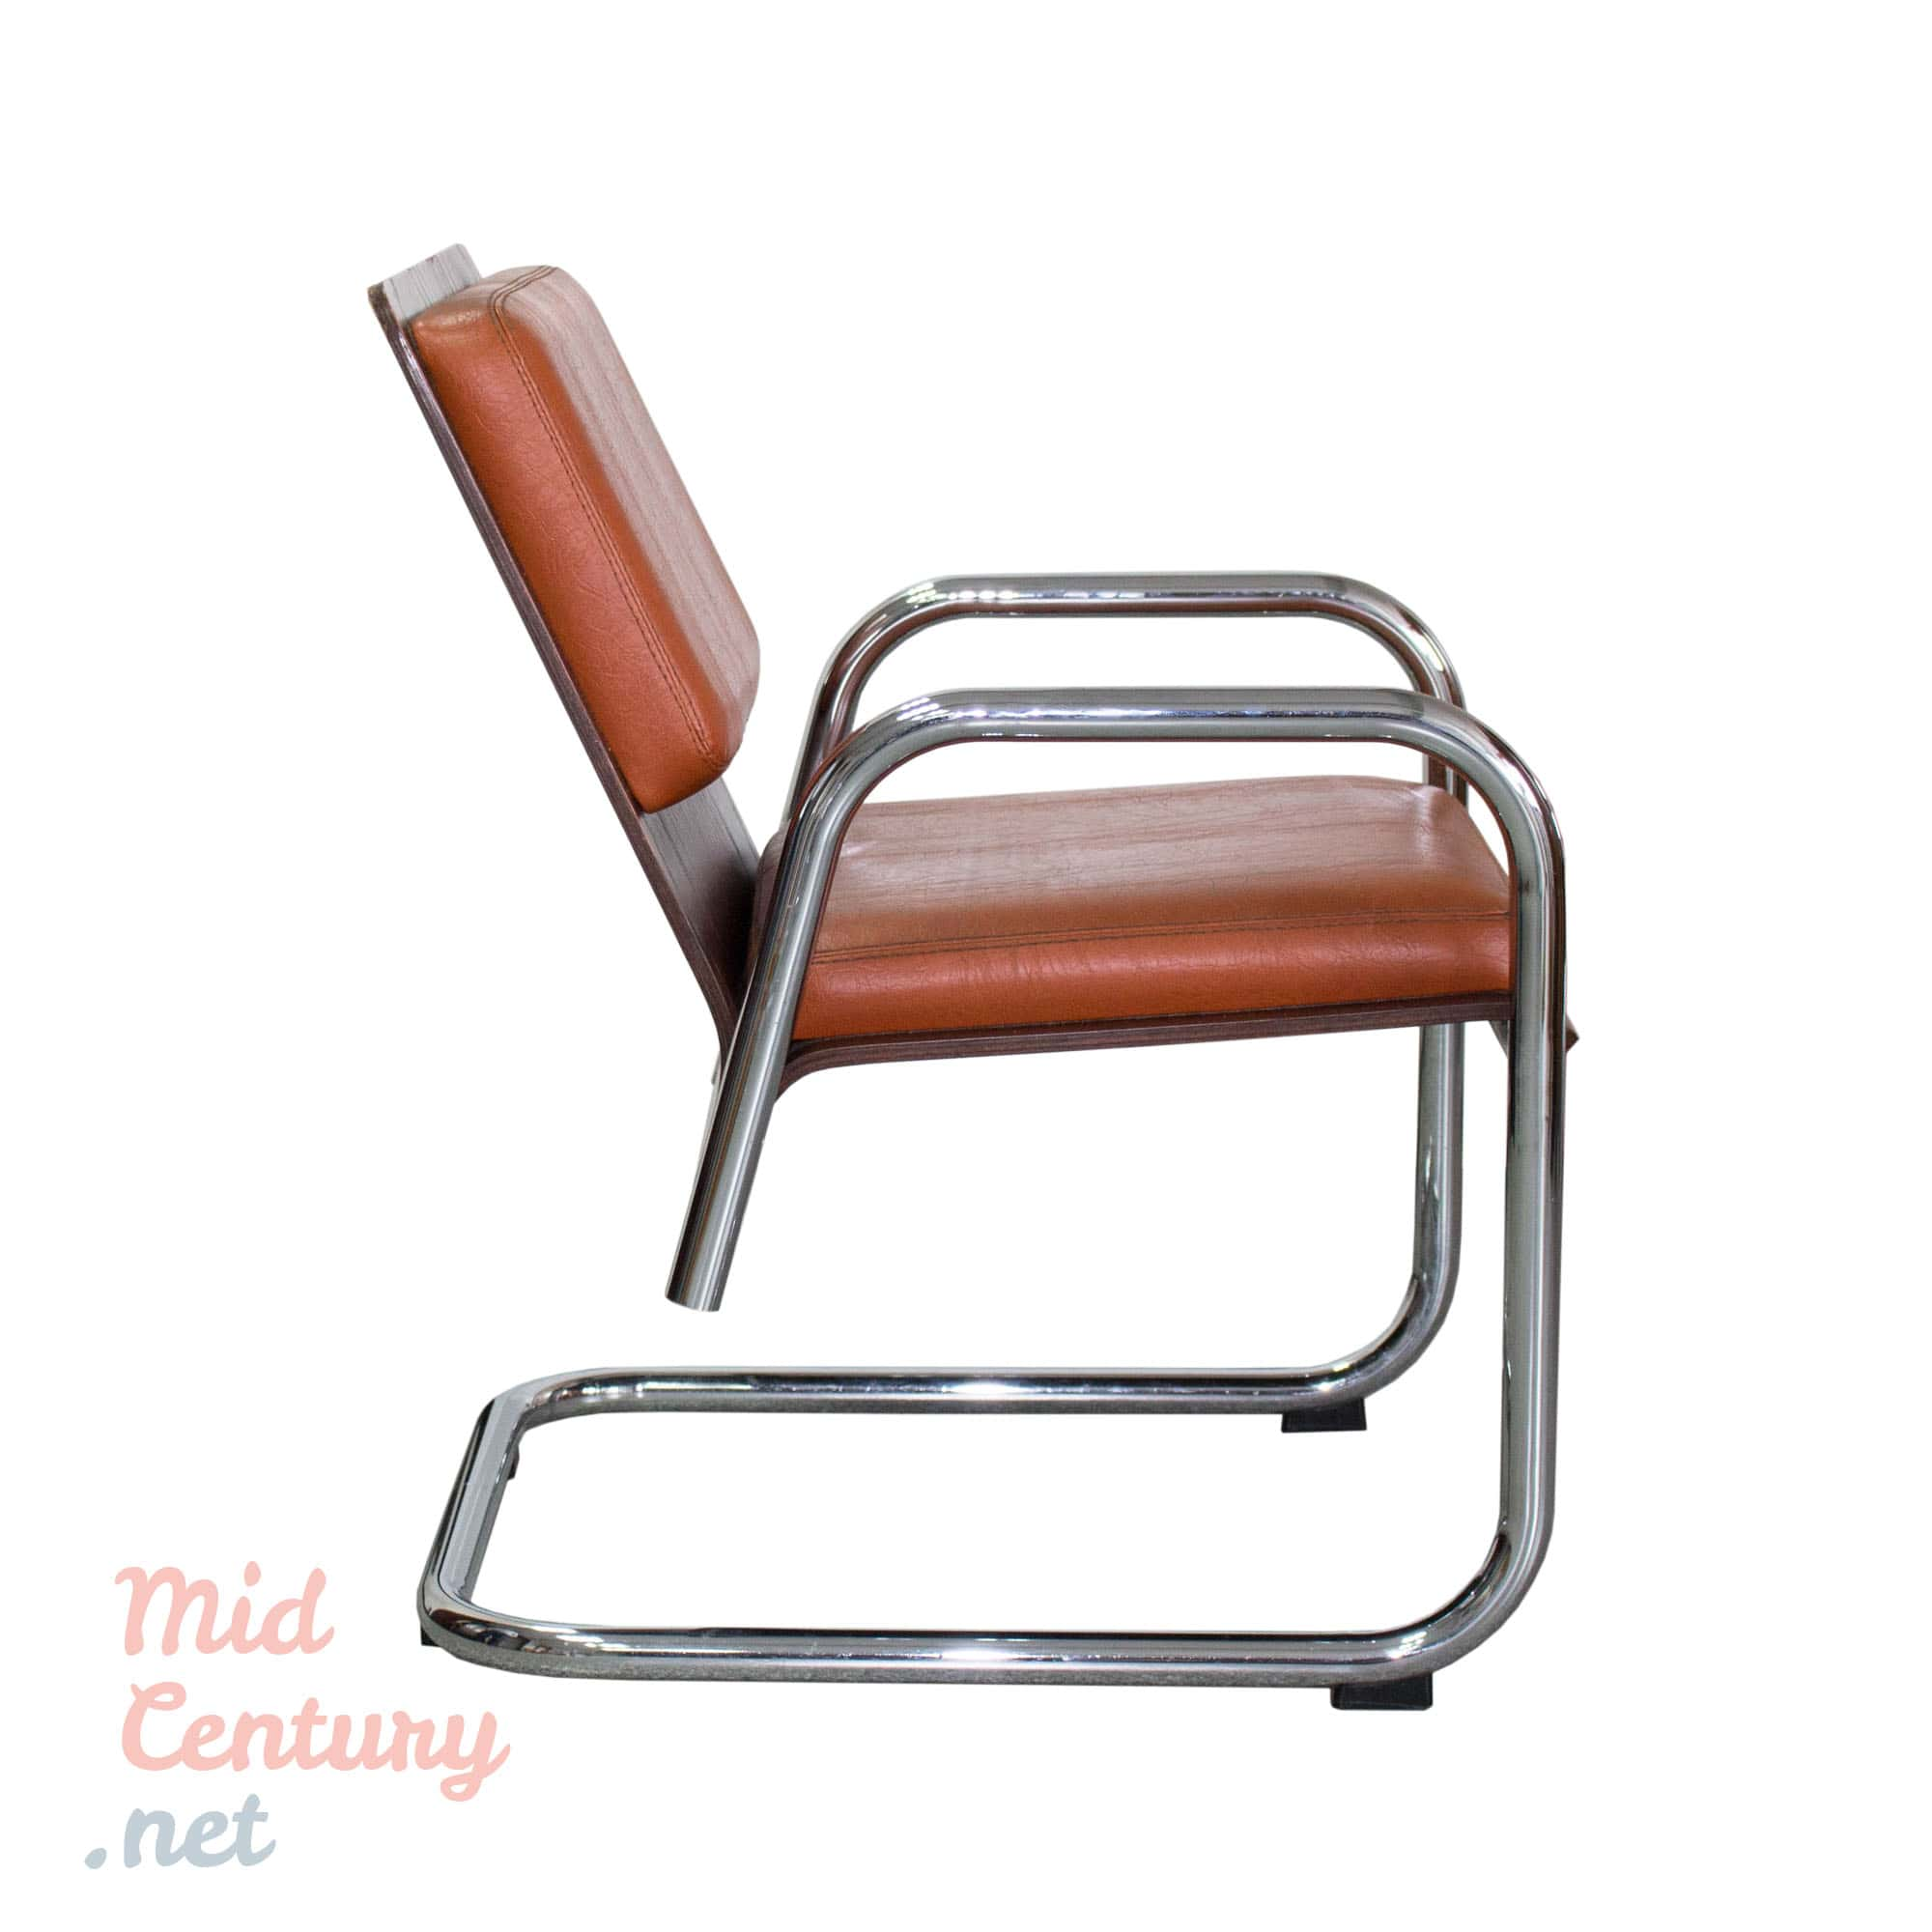 Cantilever armchair made in the 1970s